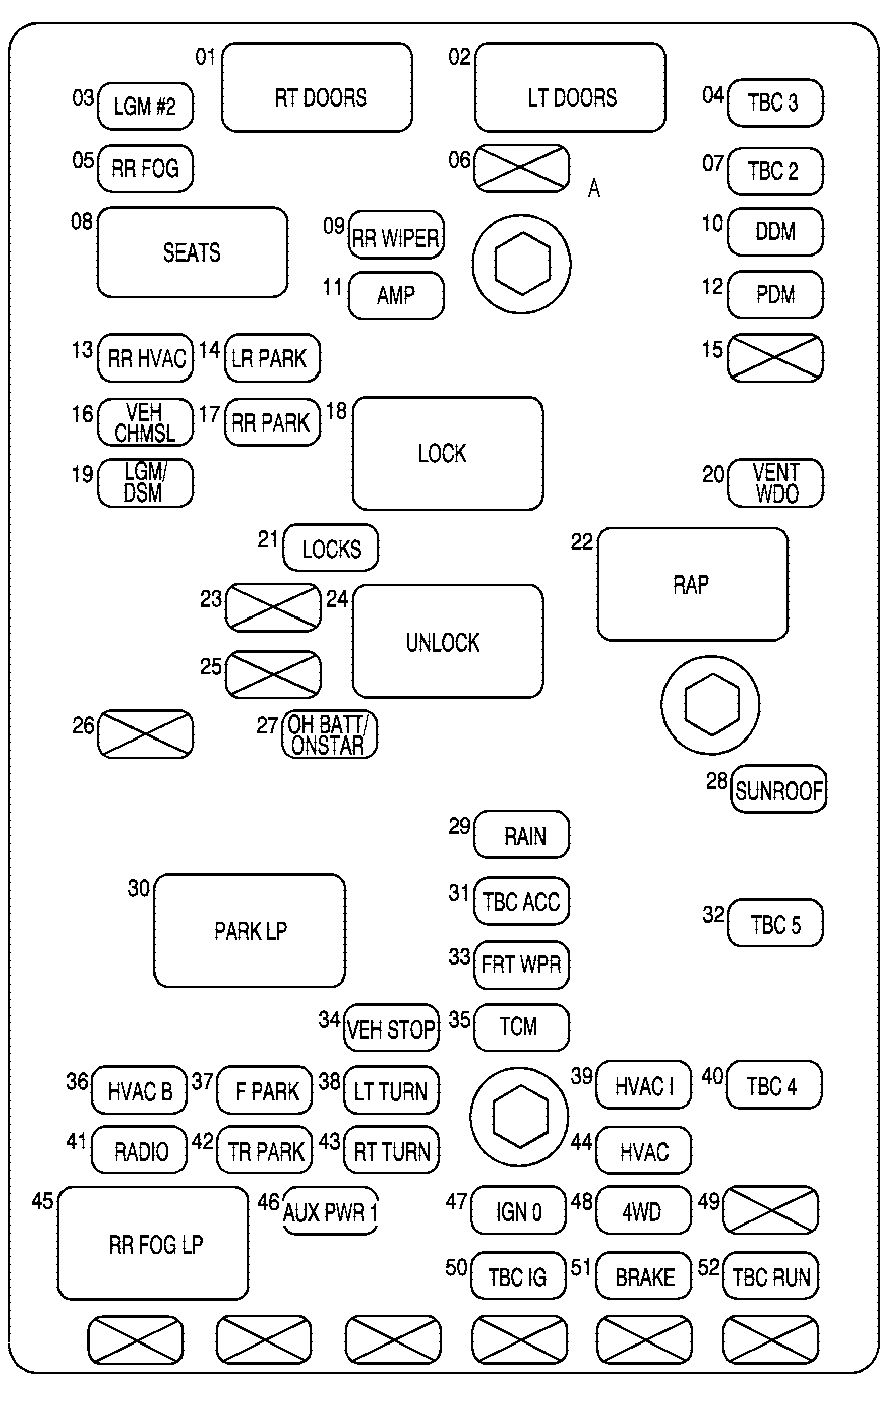 2005 Gmc Envoy Rear Fuse Box Diagram Wiring Blog 98 Jimmy Diagrams Data 1998